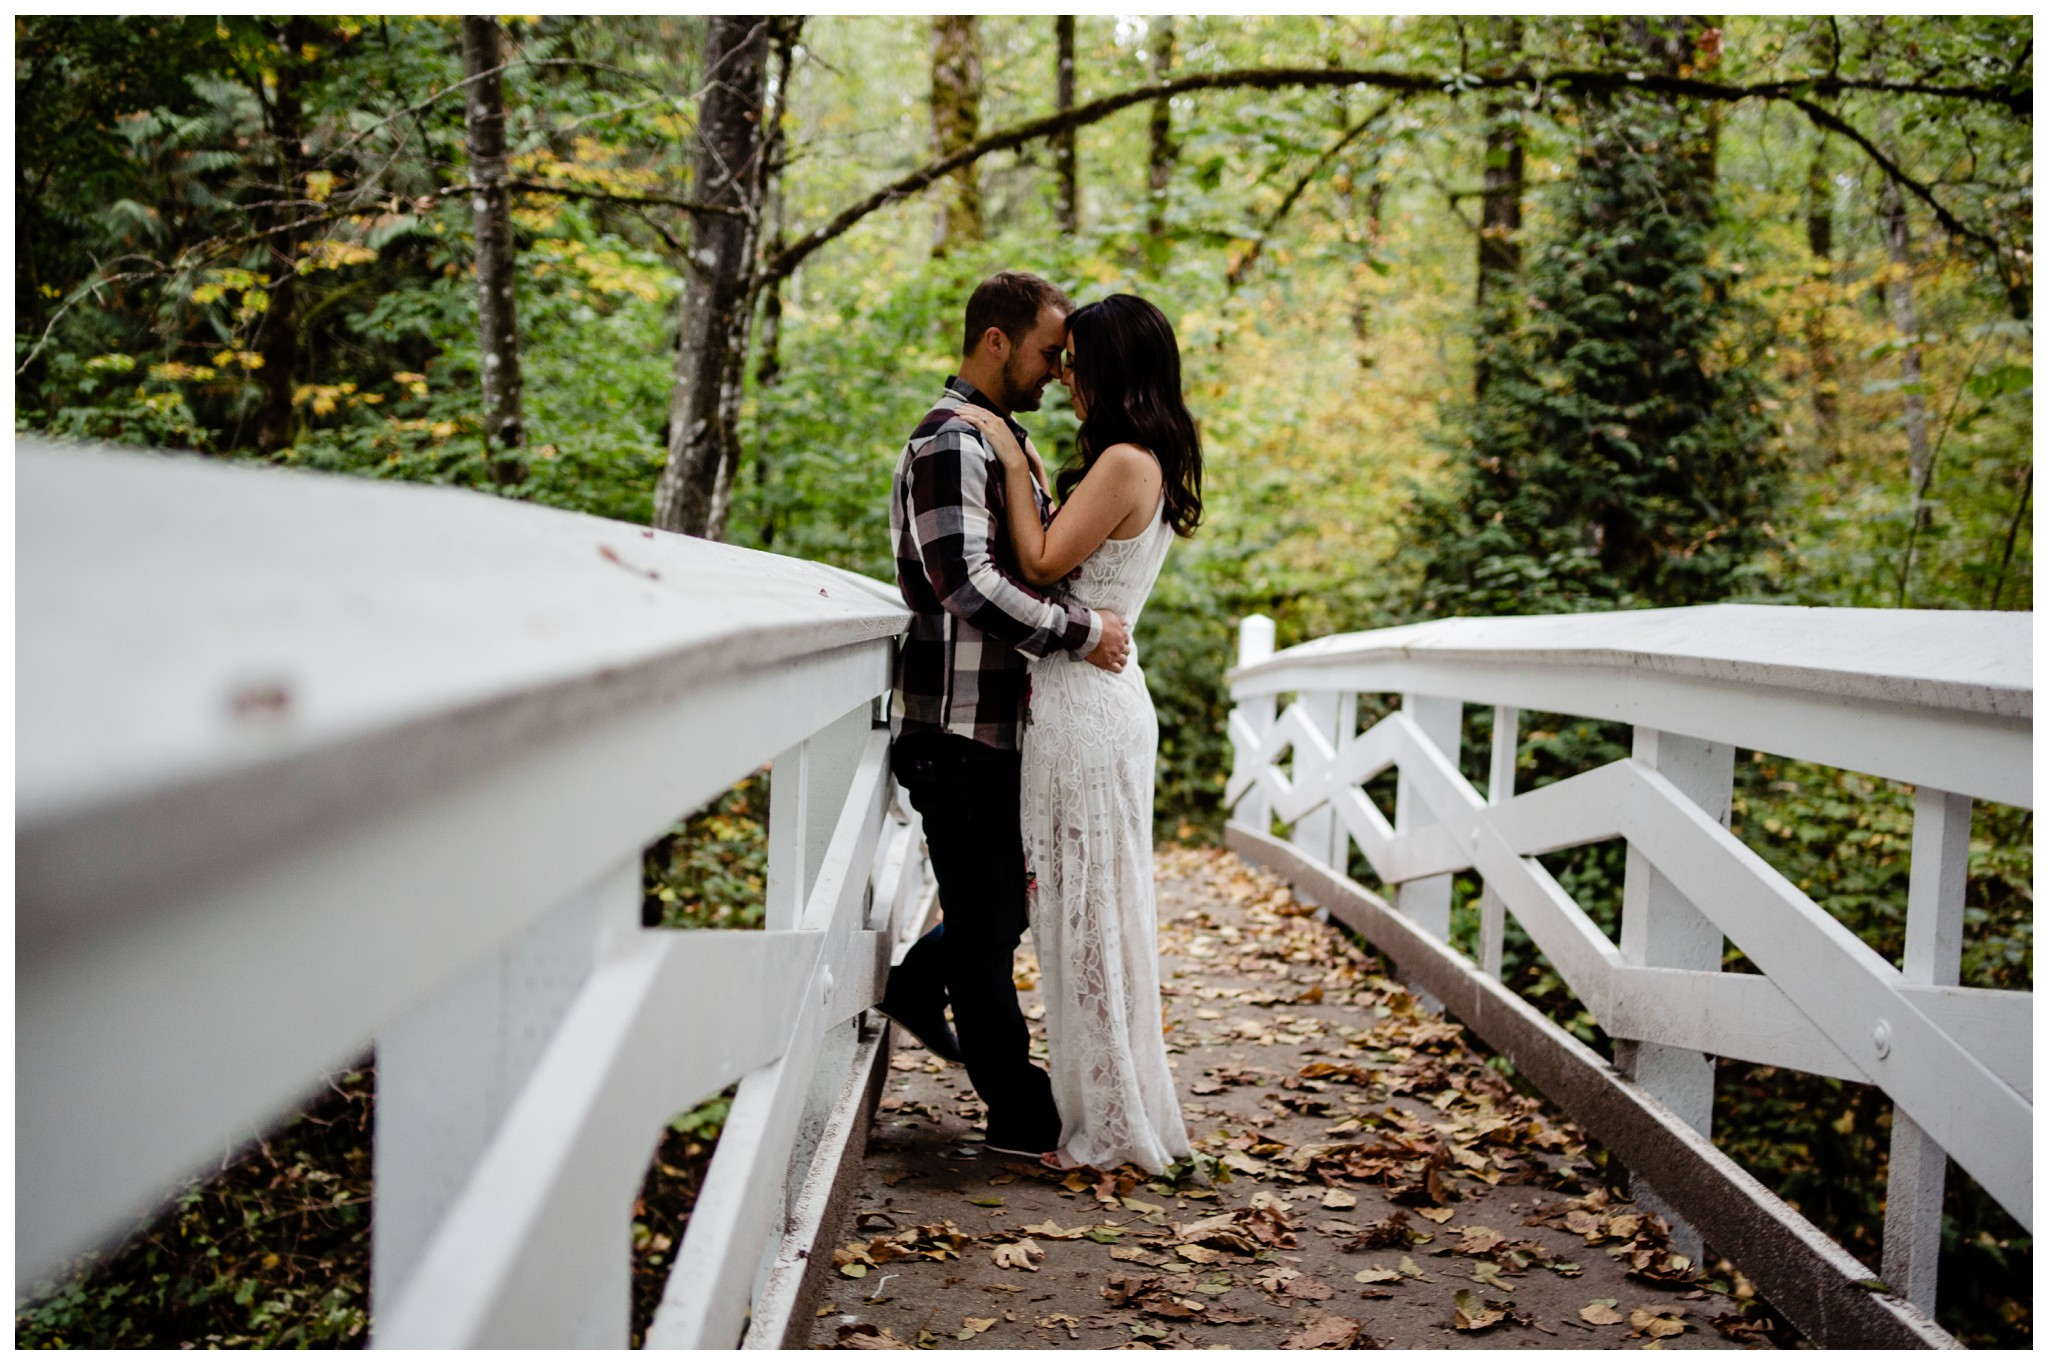 Williams Park Aldergrove Engagement Photographer Moody Fall Couple River Water Romantic Pose Yellow Leaves White Dress Dark_0020.jpg